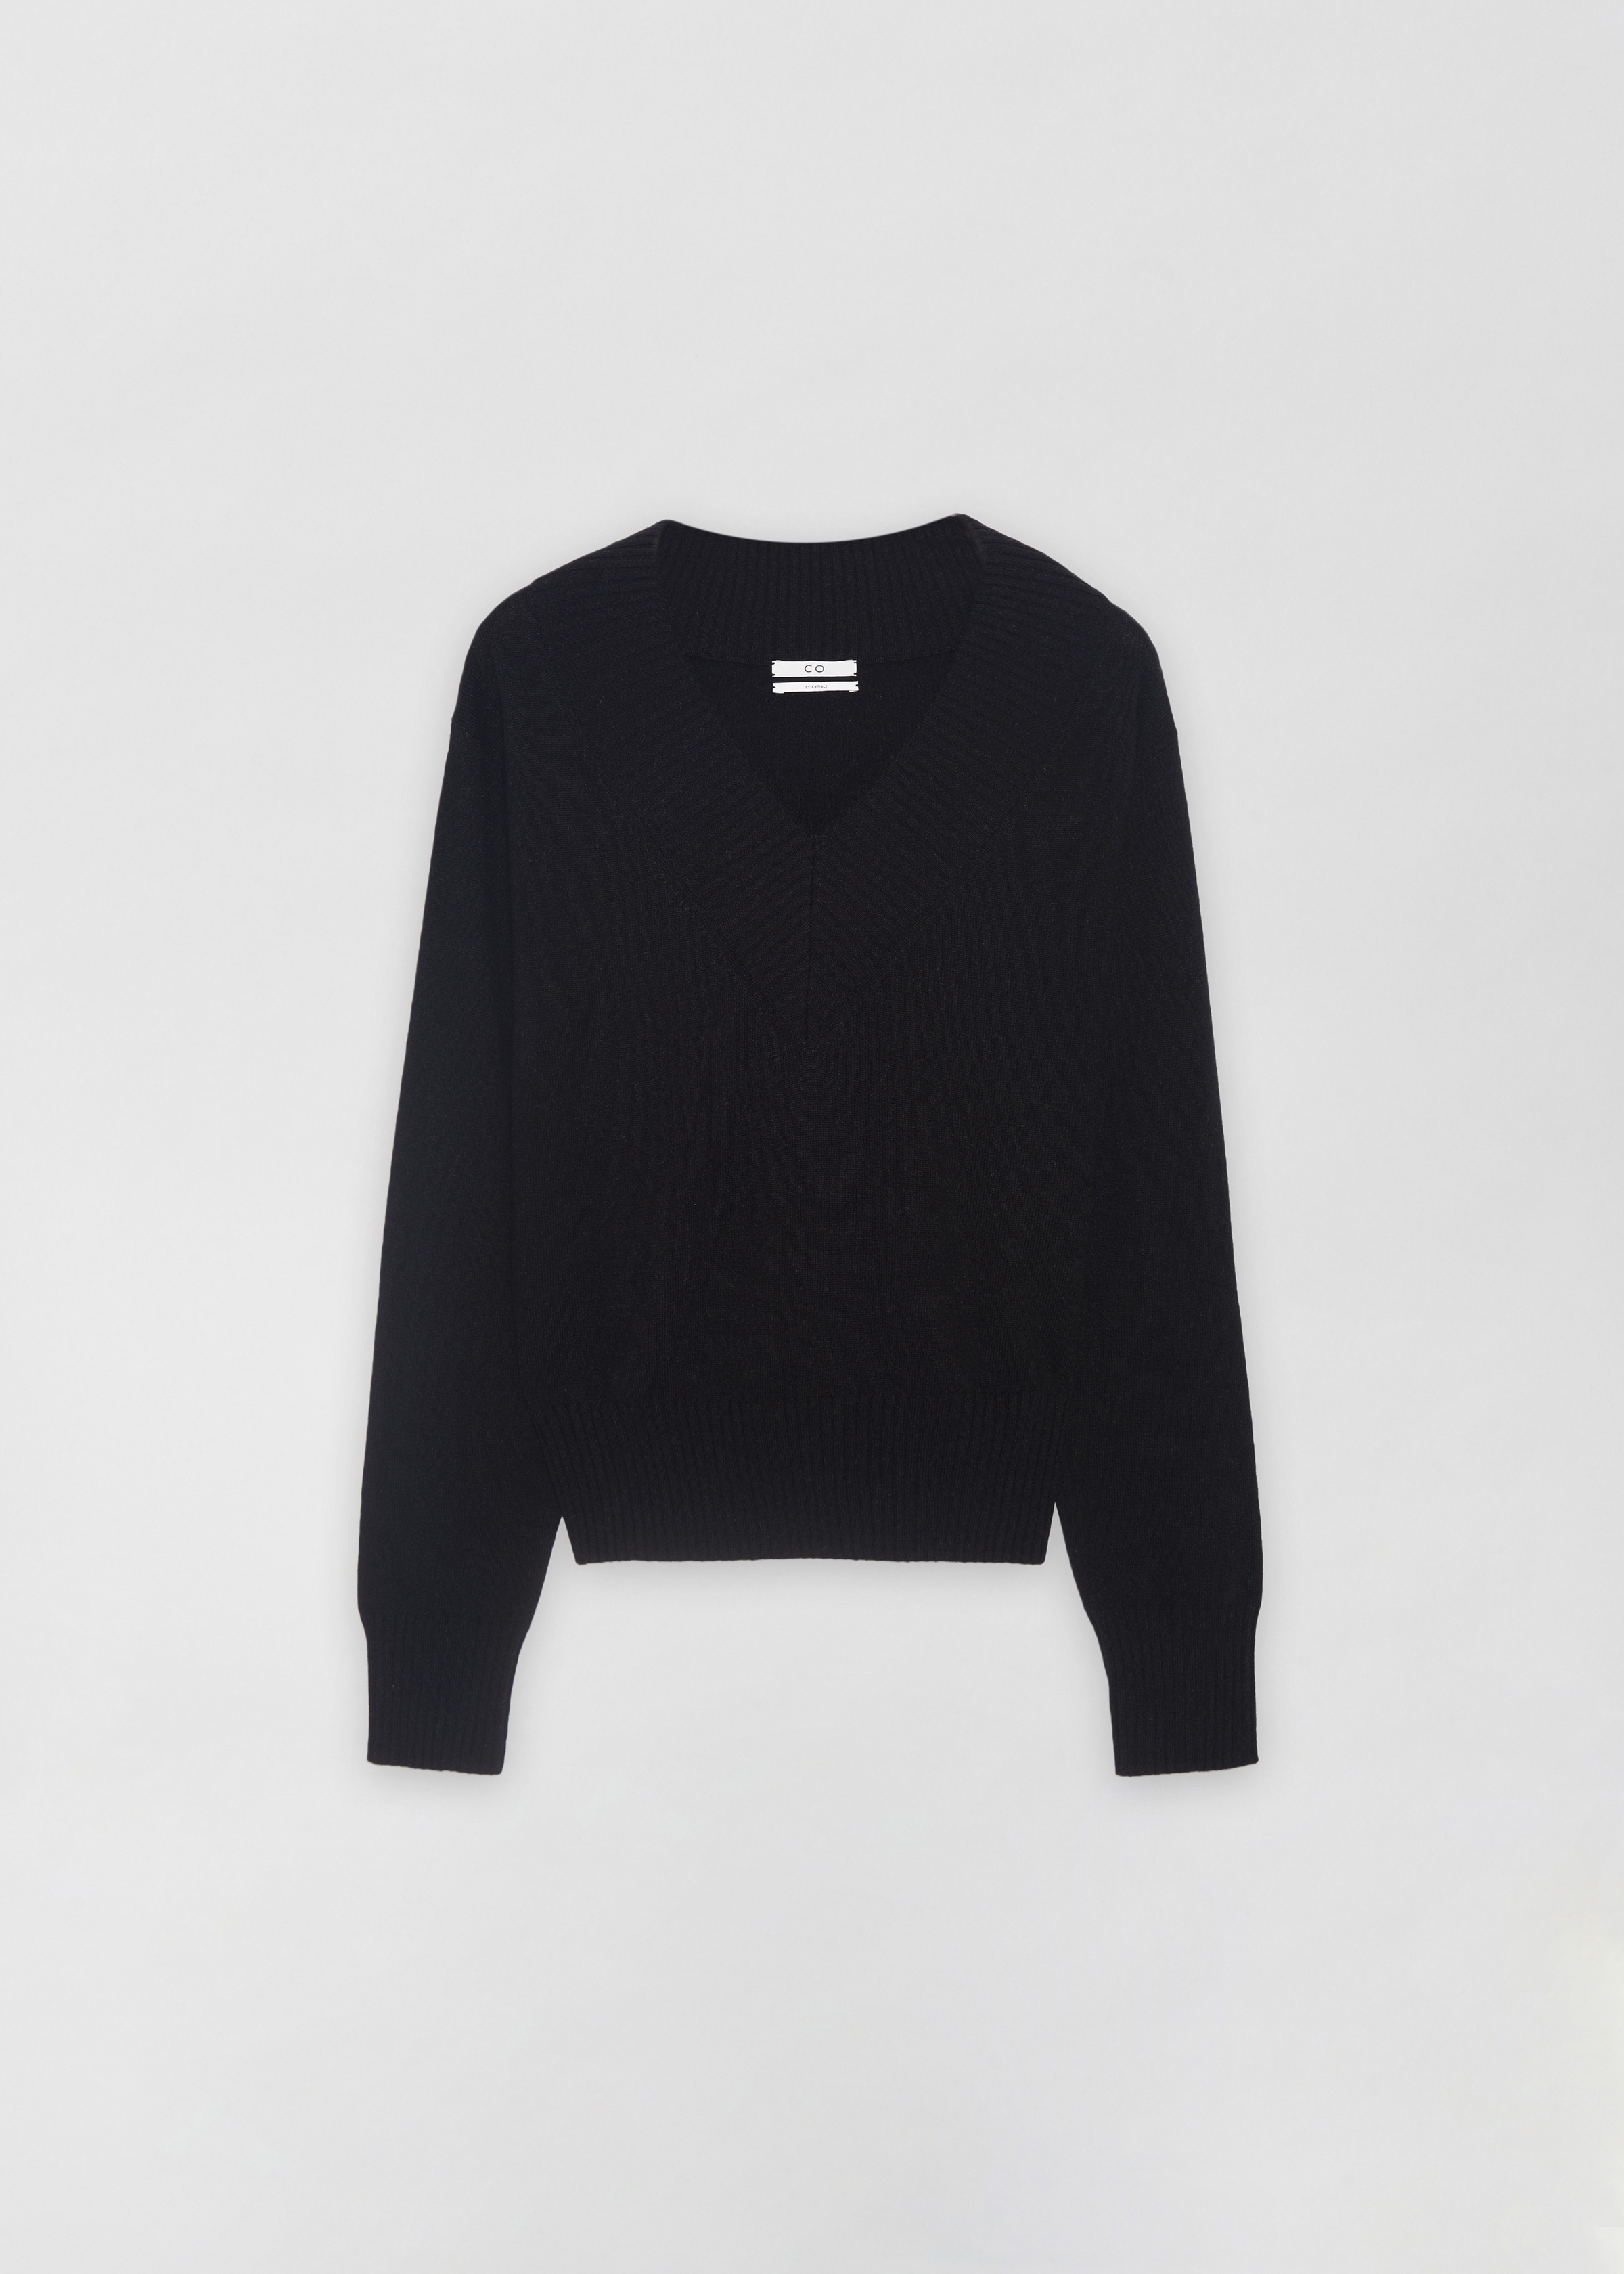 Cashmere V-Neck Sweater in Black by Co Collections